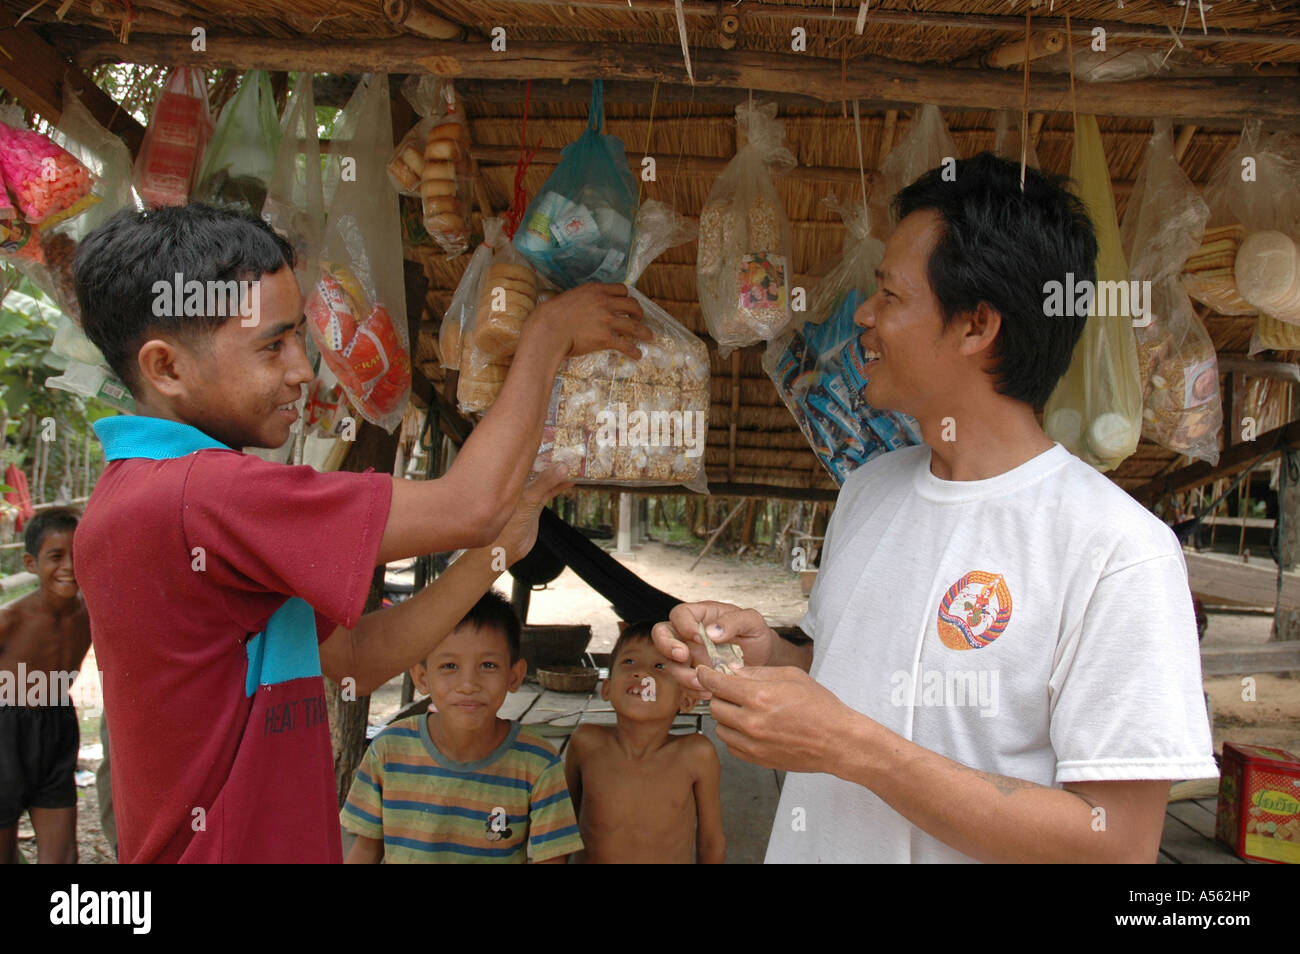 Painet ix2005 cambodia micro credit recipient bought small shop loan taken by cherock 35 country developing nation - Stock Image